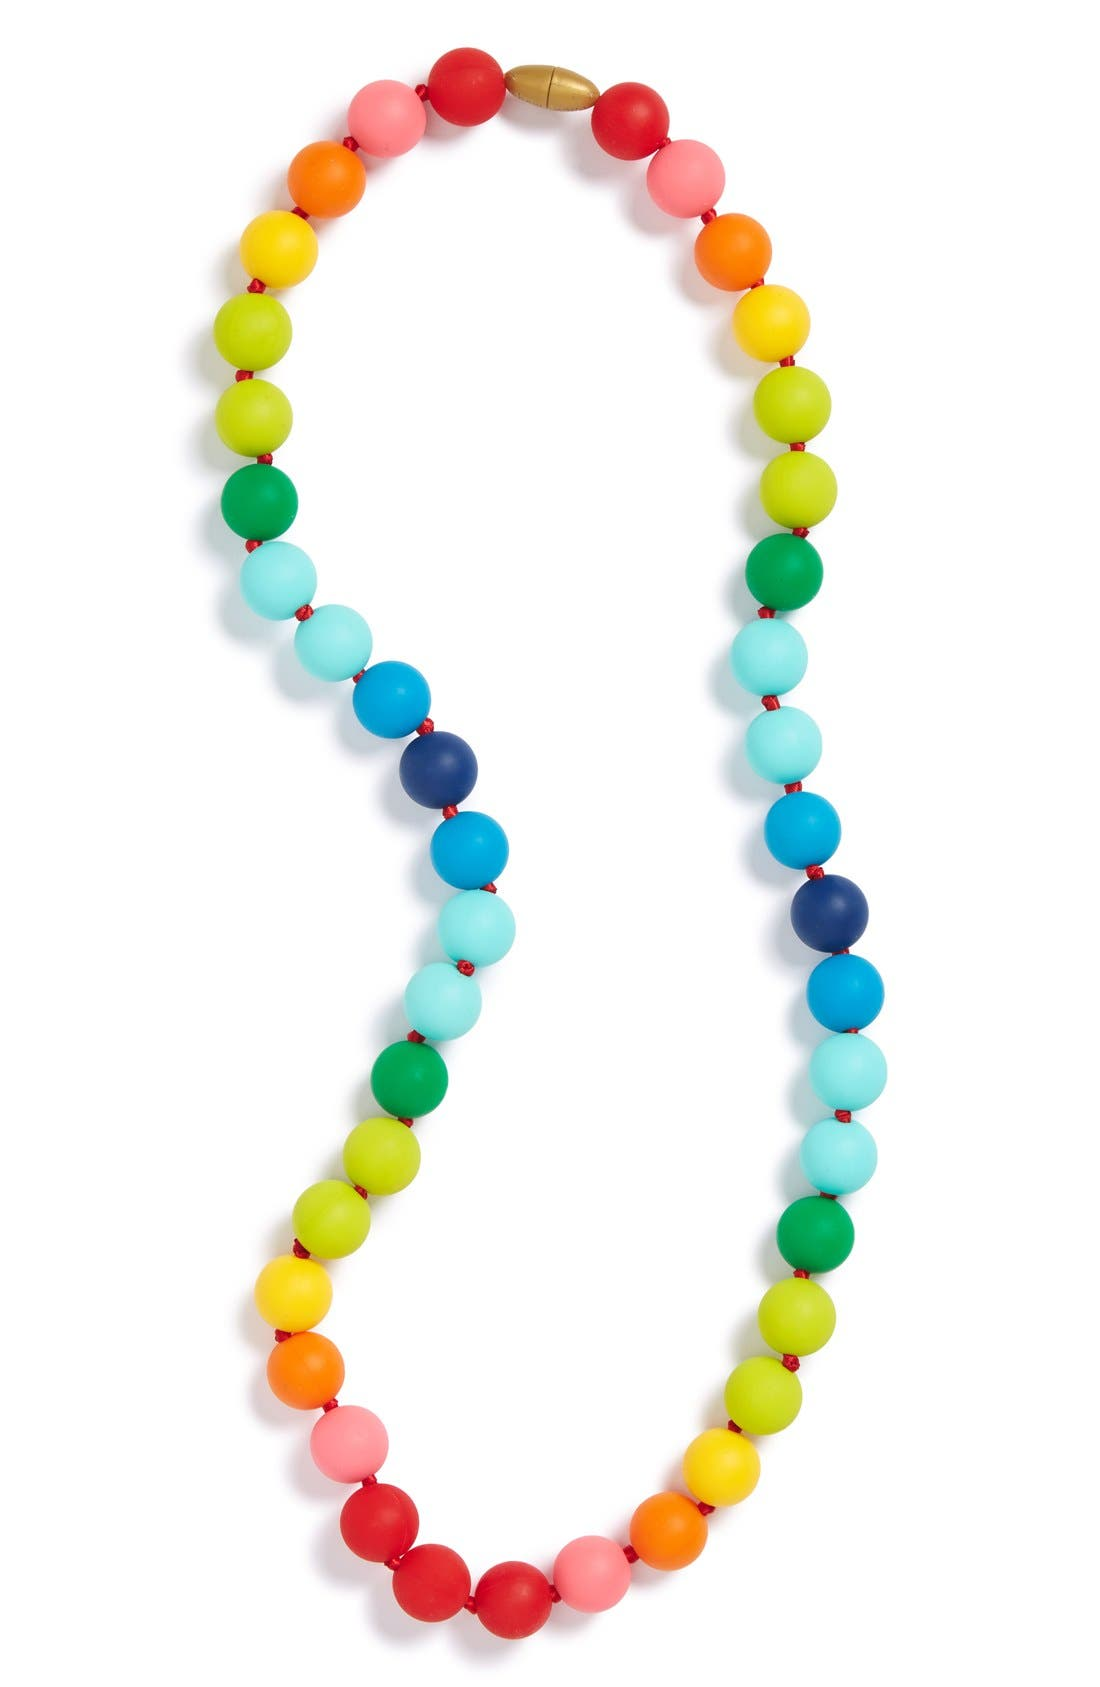 CHEWBEADS 'Christopher' Teether Necklace